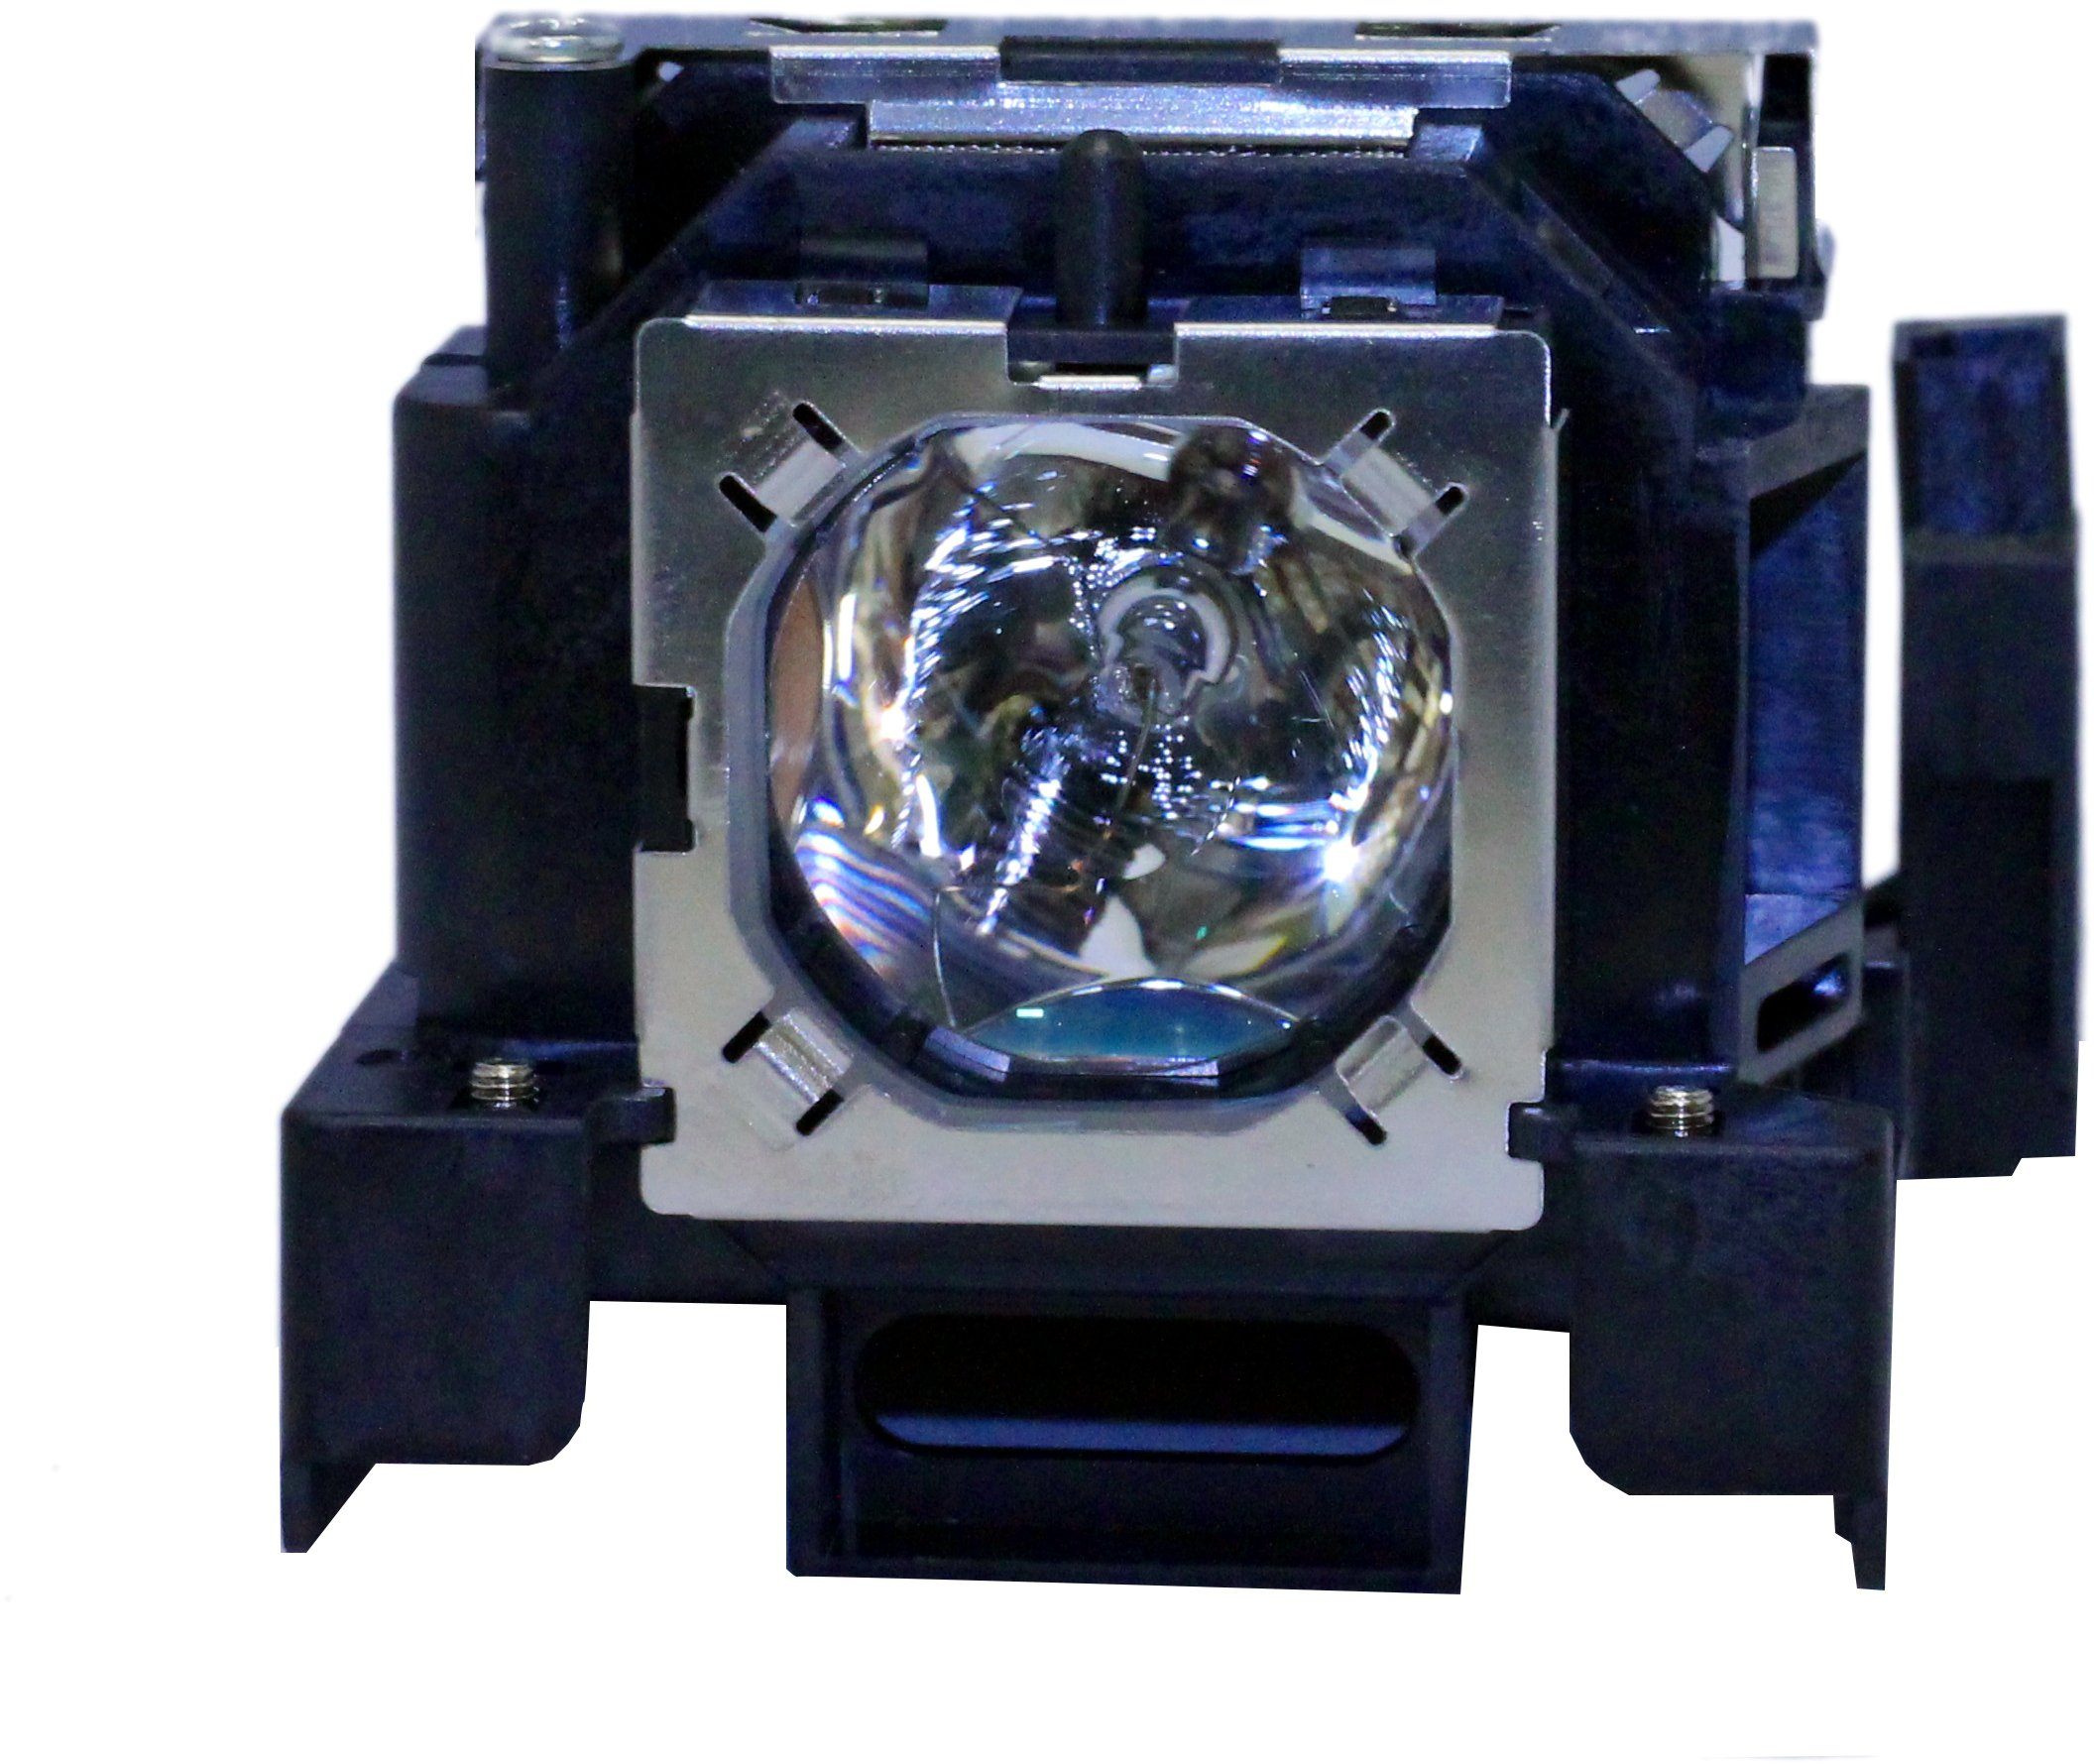 V7 VPL2133-1N Lamp for select Hitachi projectors